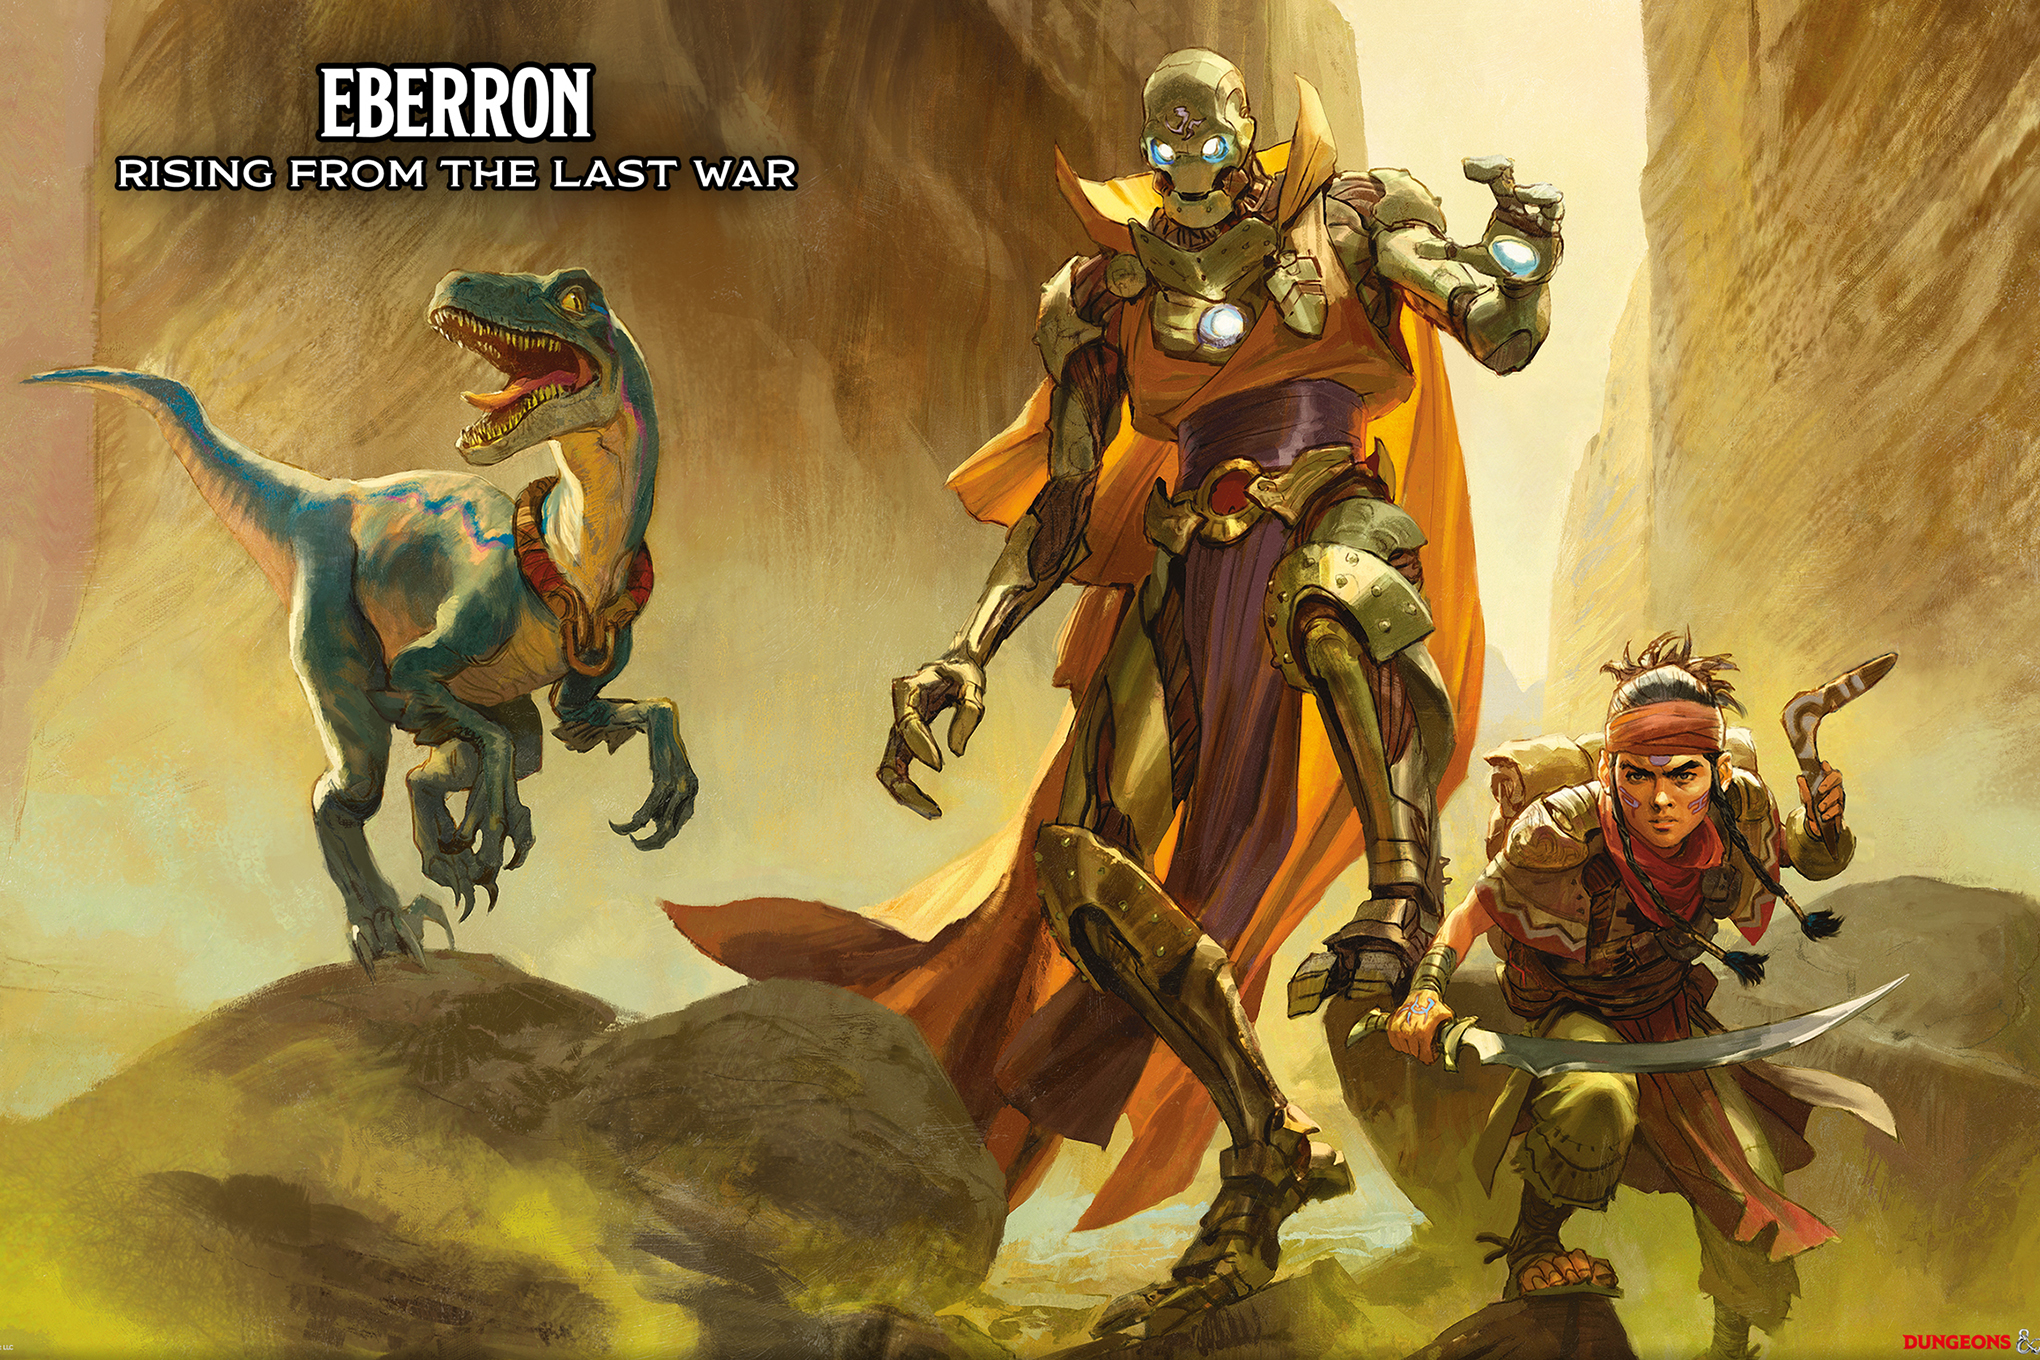 D&D's first new character class in 5 years could cause nightmares for DMs